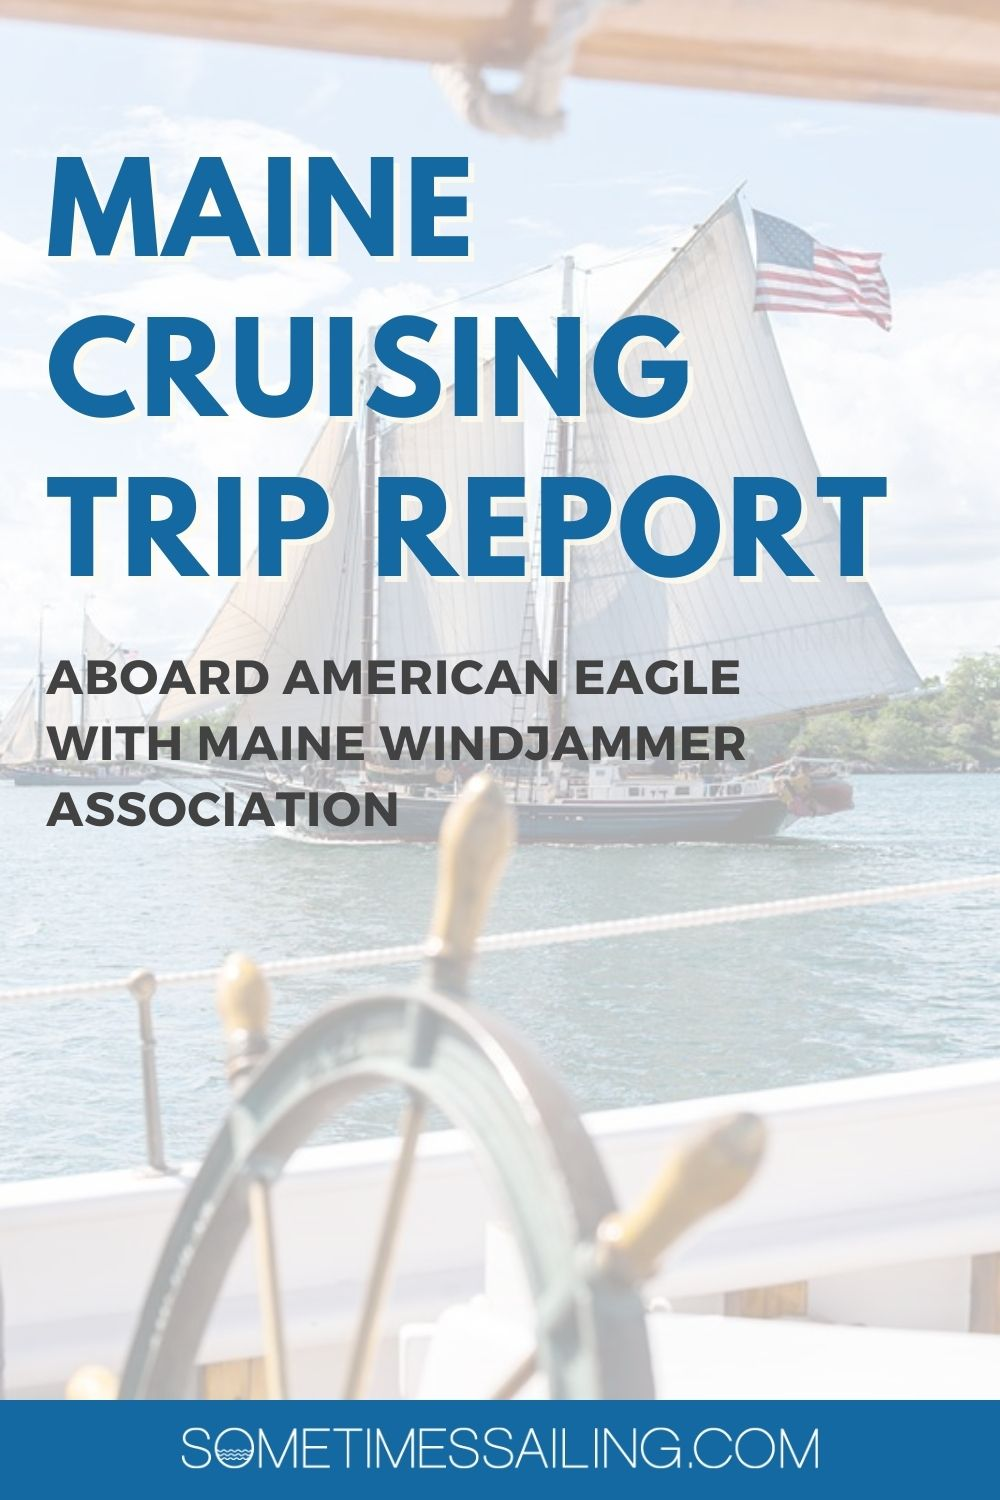 Maine Cruising Trip Report image with a faded photo of a sailboat in the background.